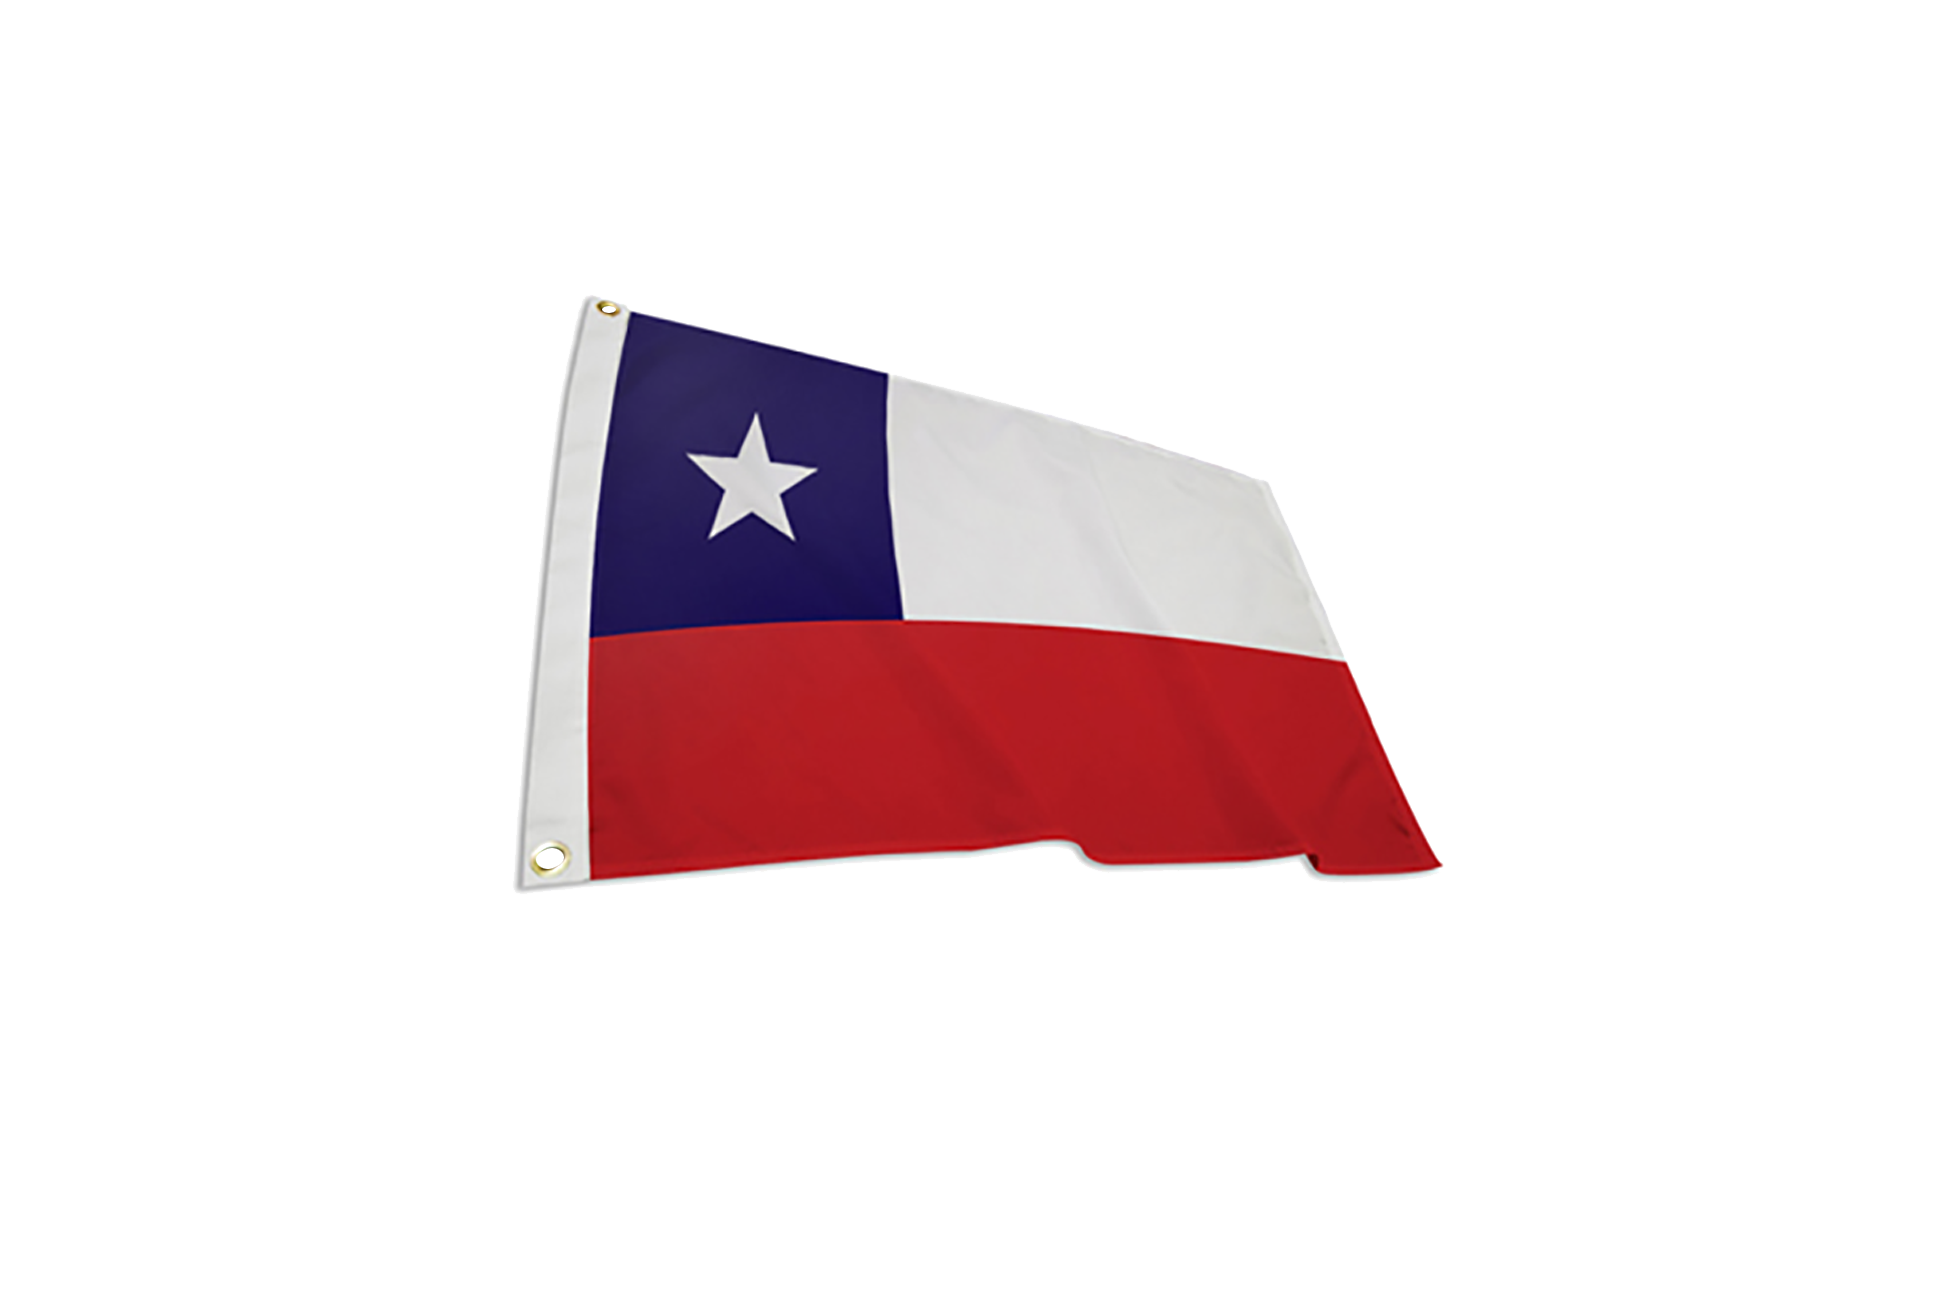 International flags banner png. Chile flag bestflag com